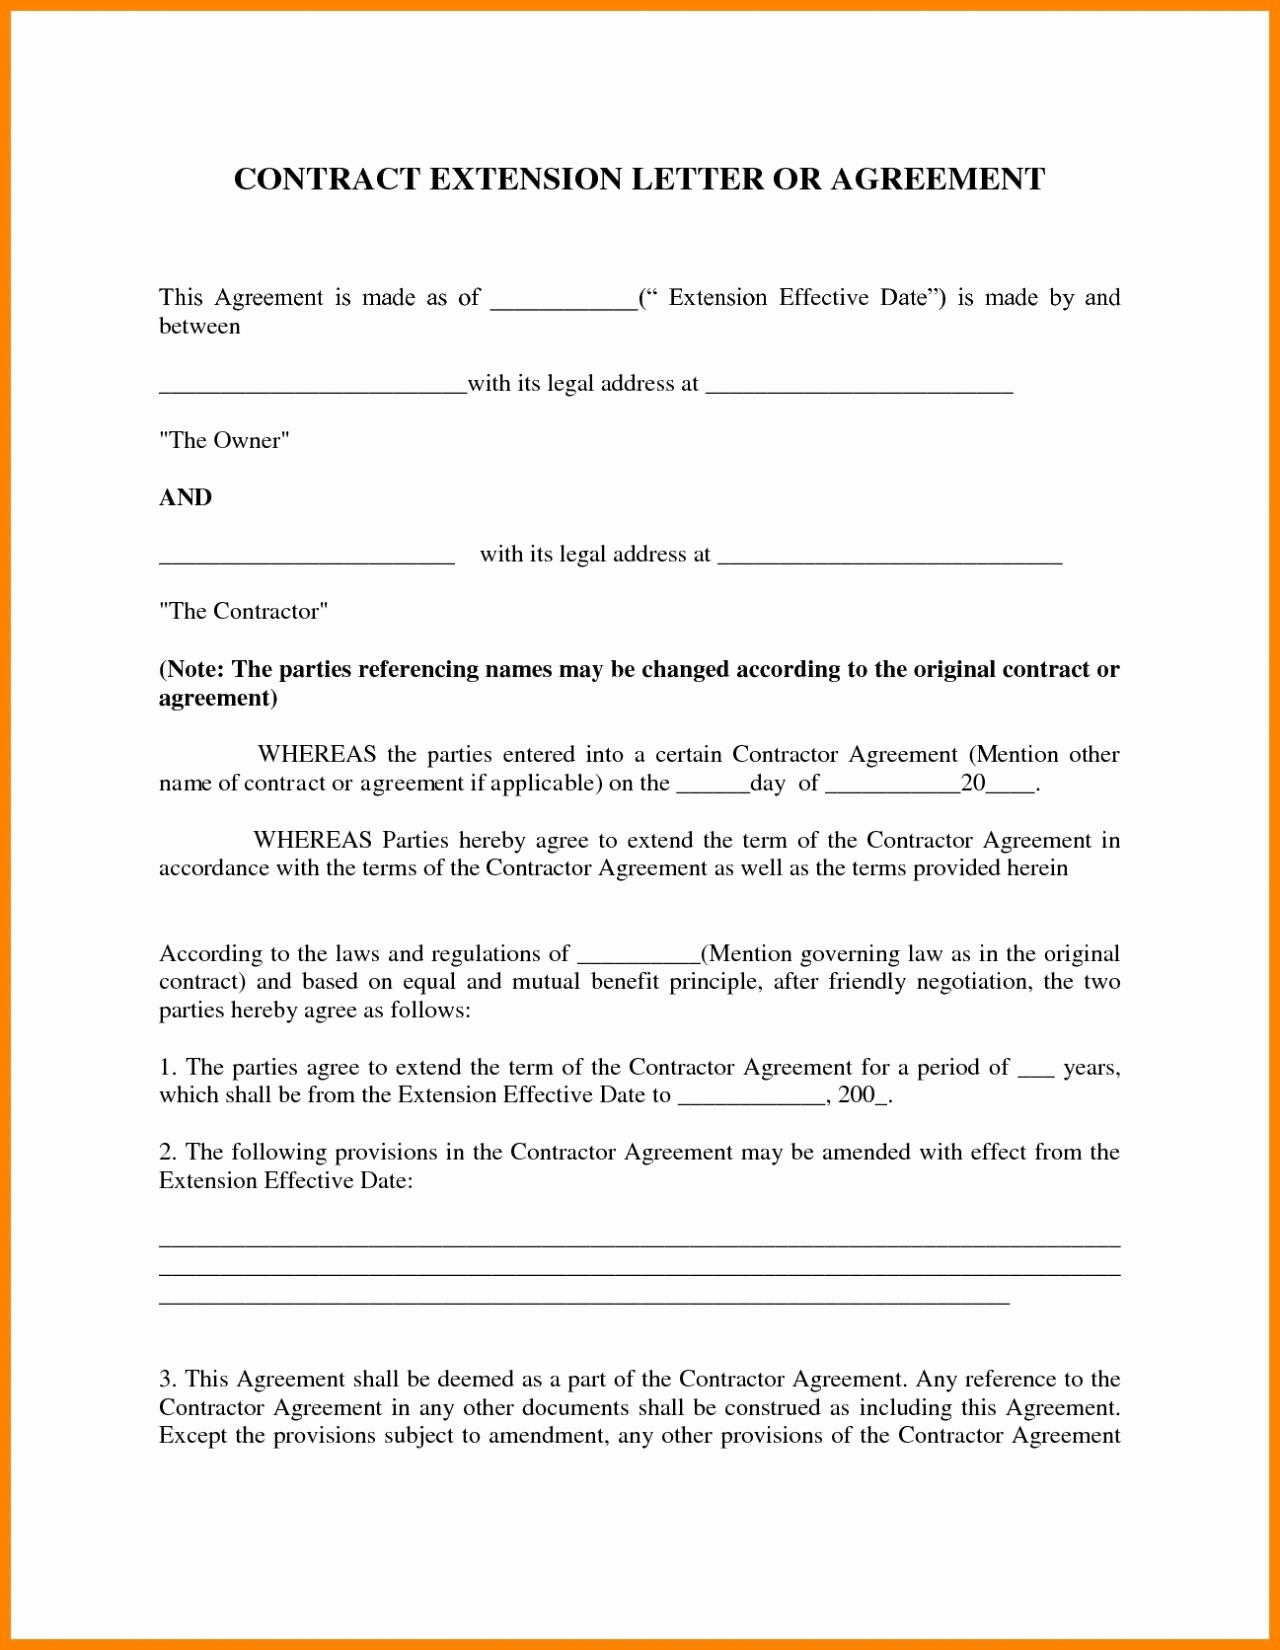 contract amendment letter template example-Contract Agreement Letter New Free Parent Child Contract Templates Best Sample Child Support 4-r